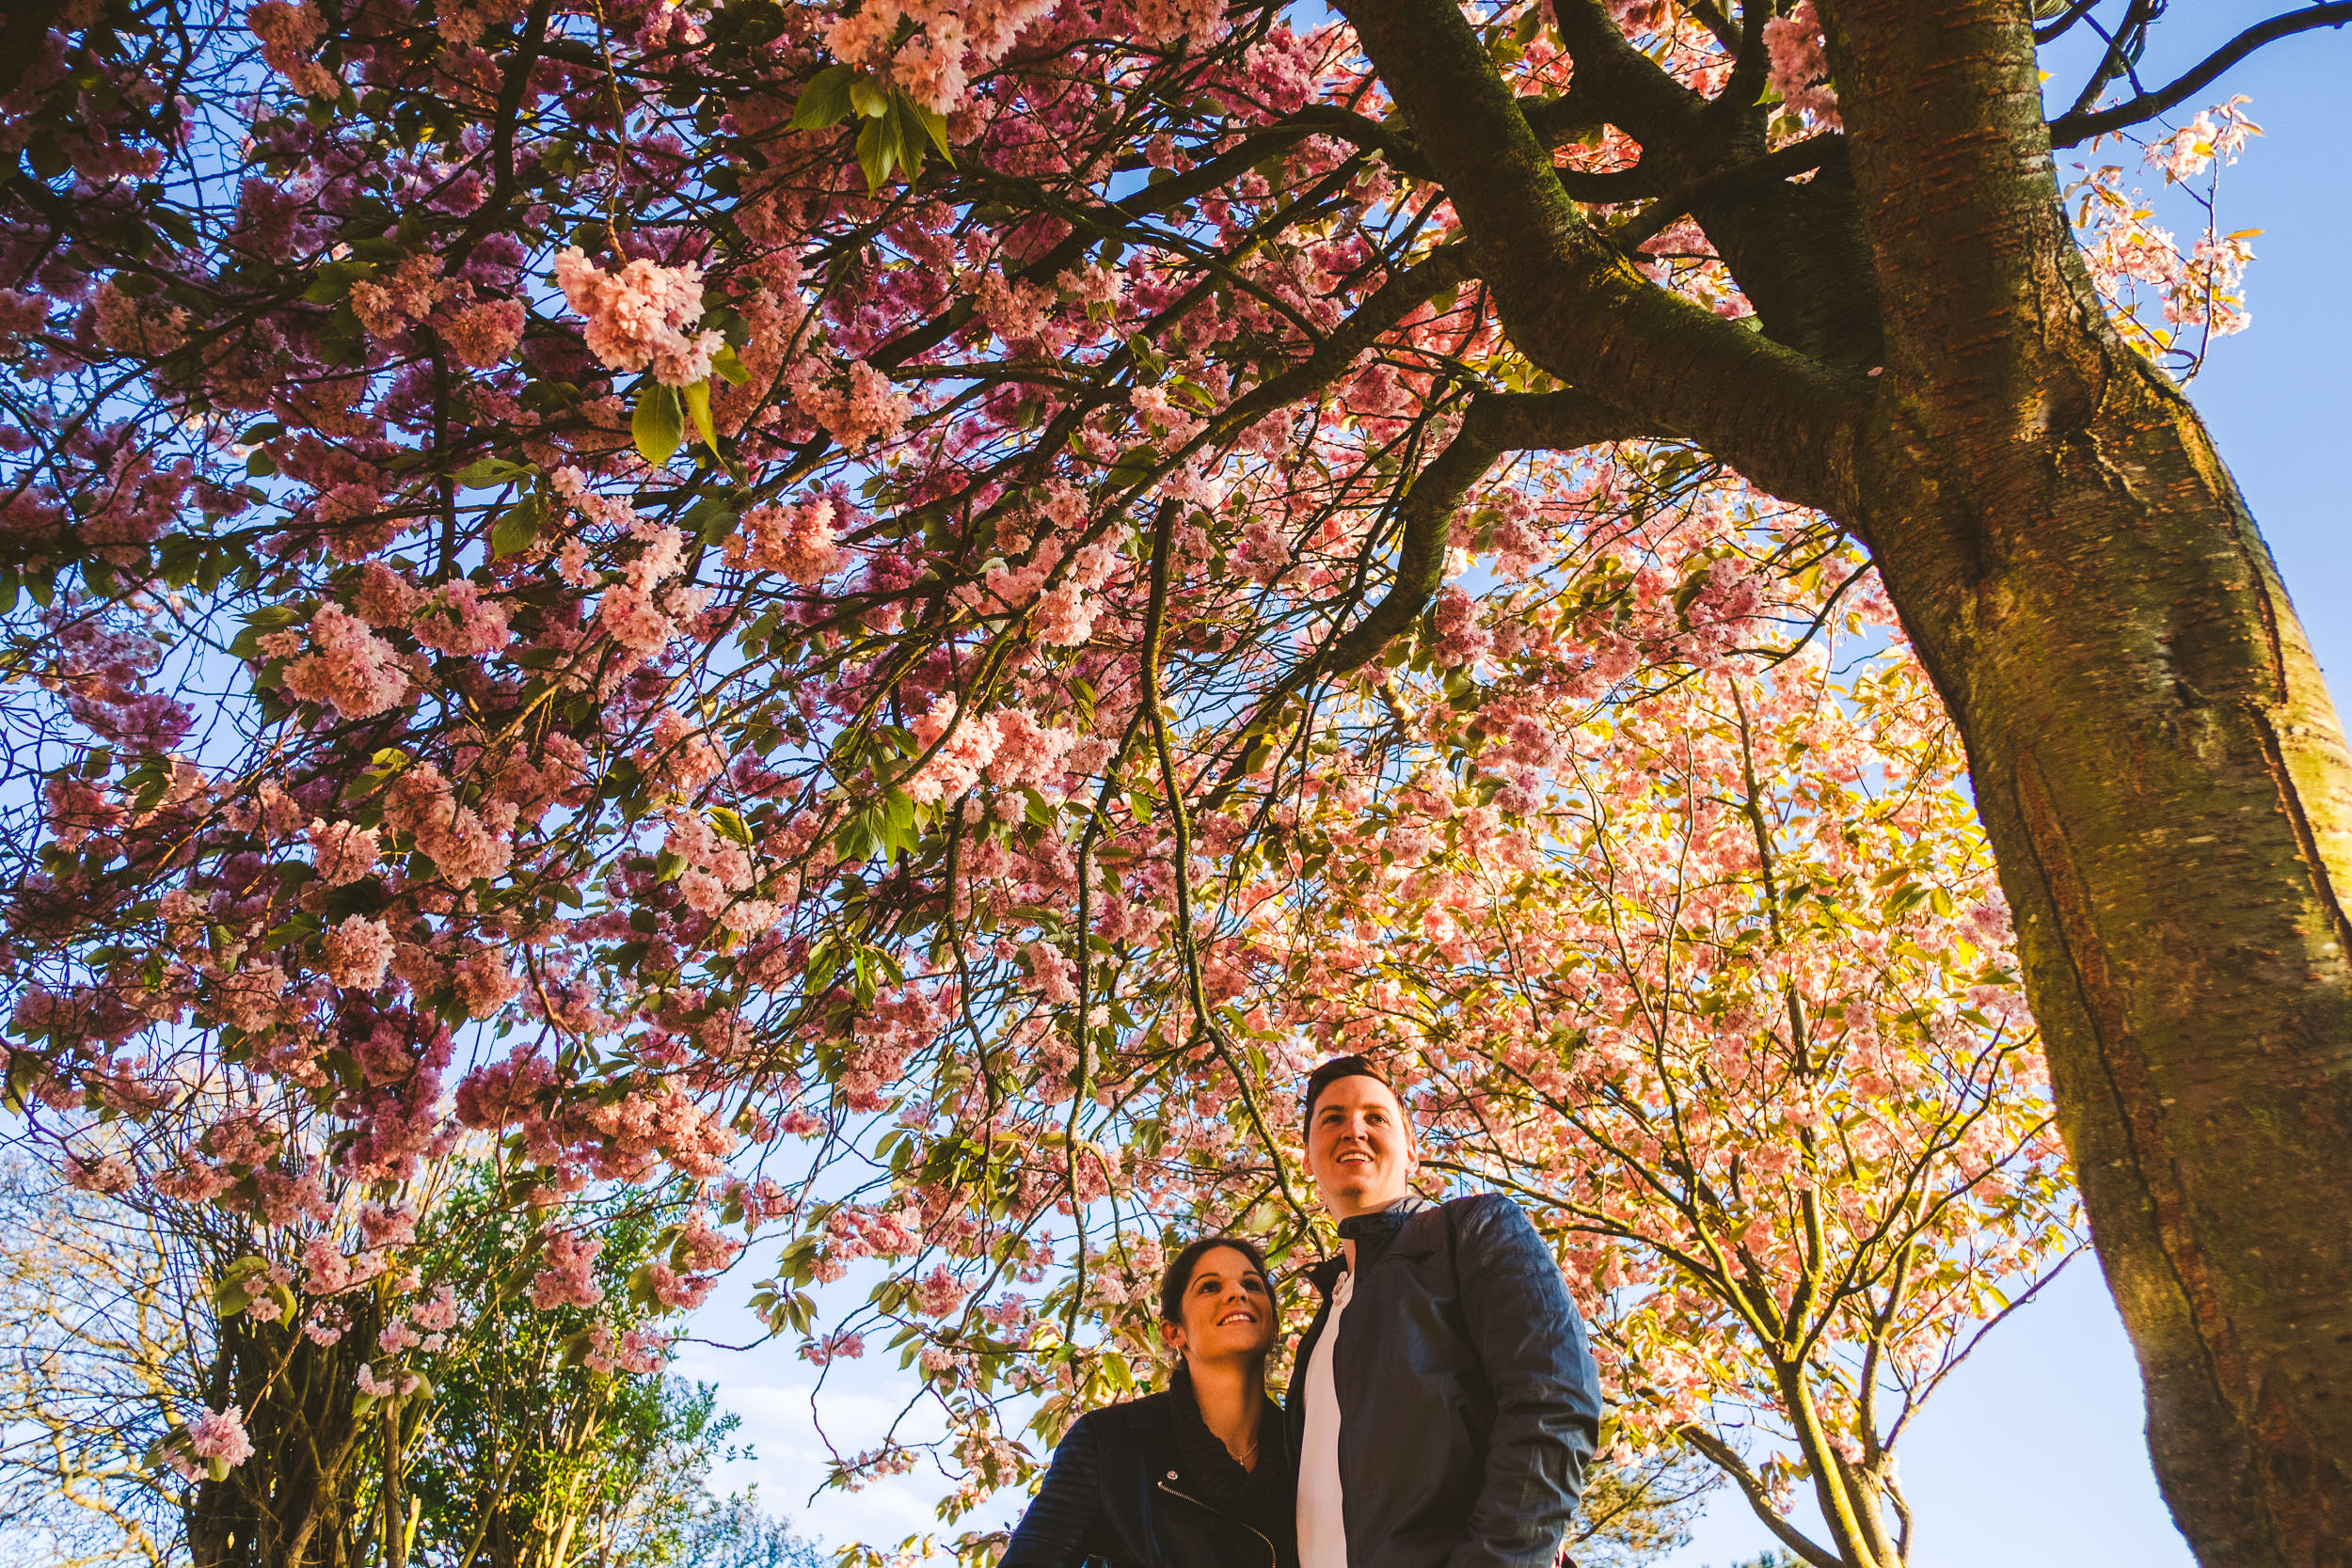 Couple cuddle while canopy of cherry blossoms is above their heads